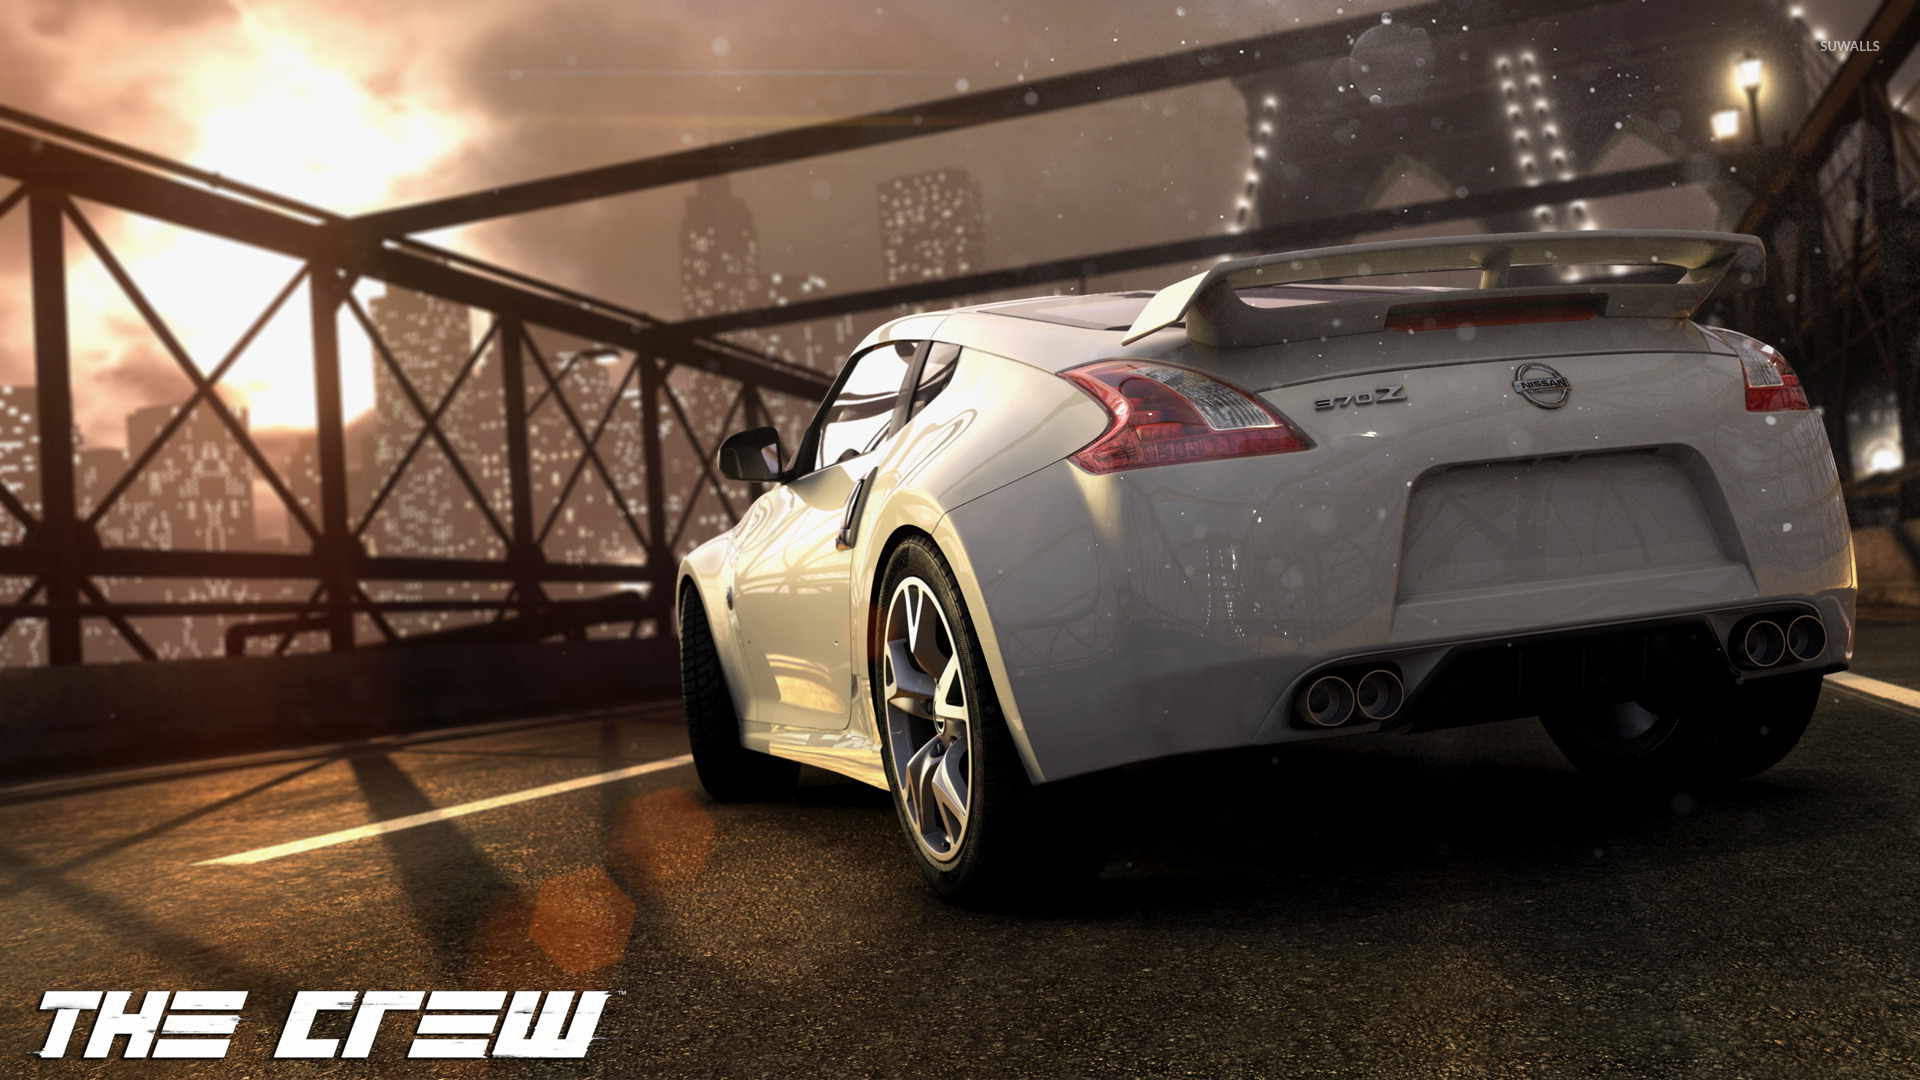 Nissan 370Z   The Crew Wallpaper